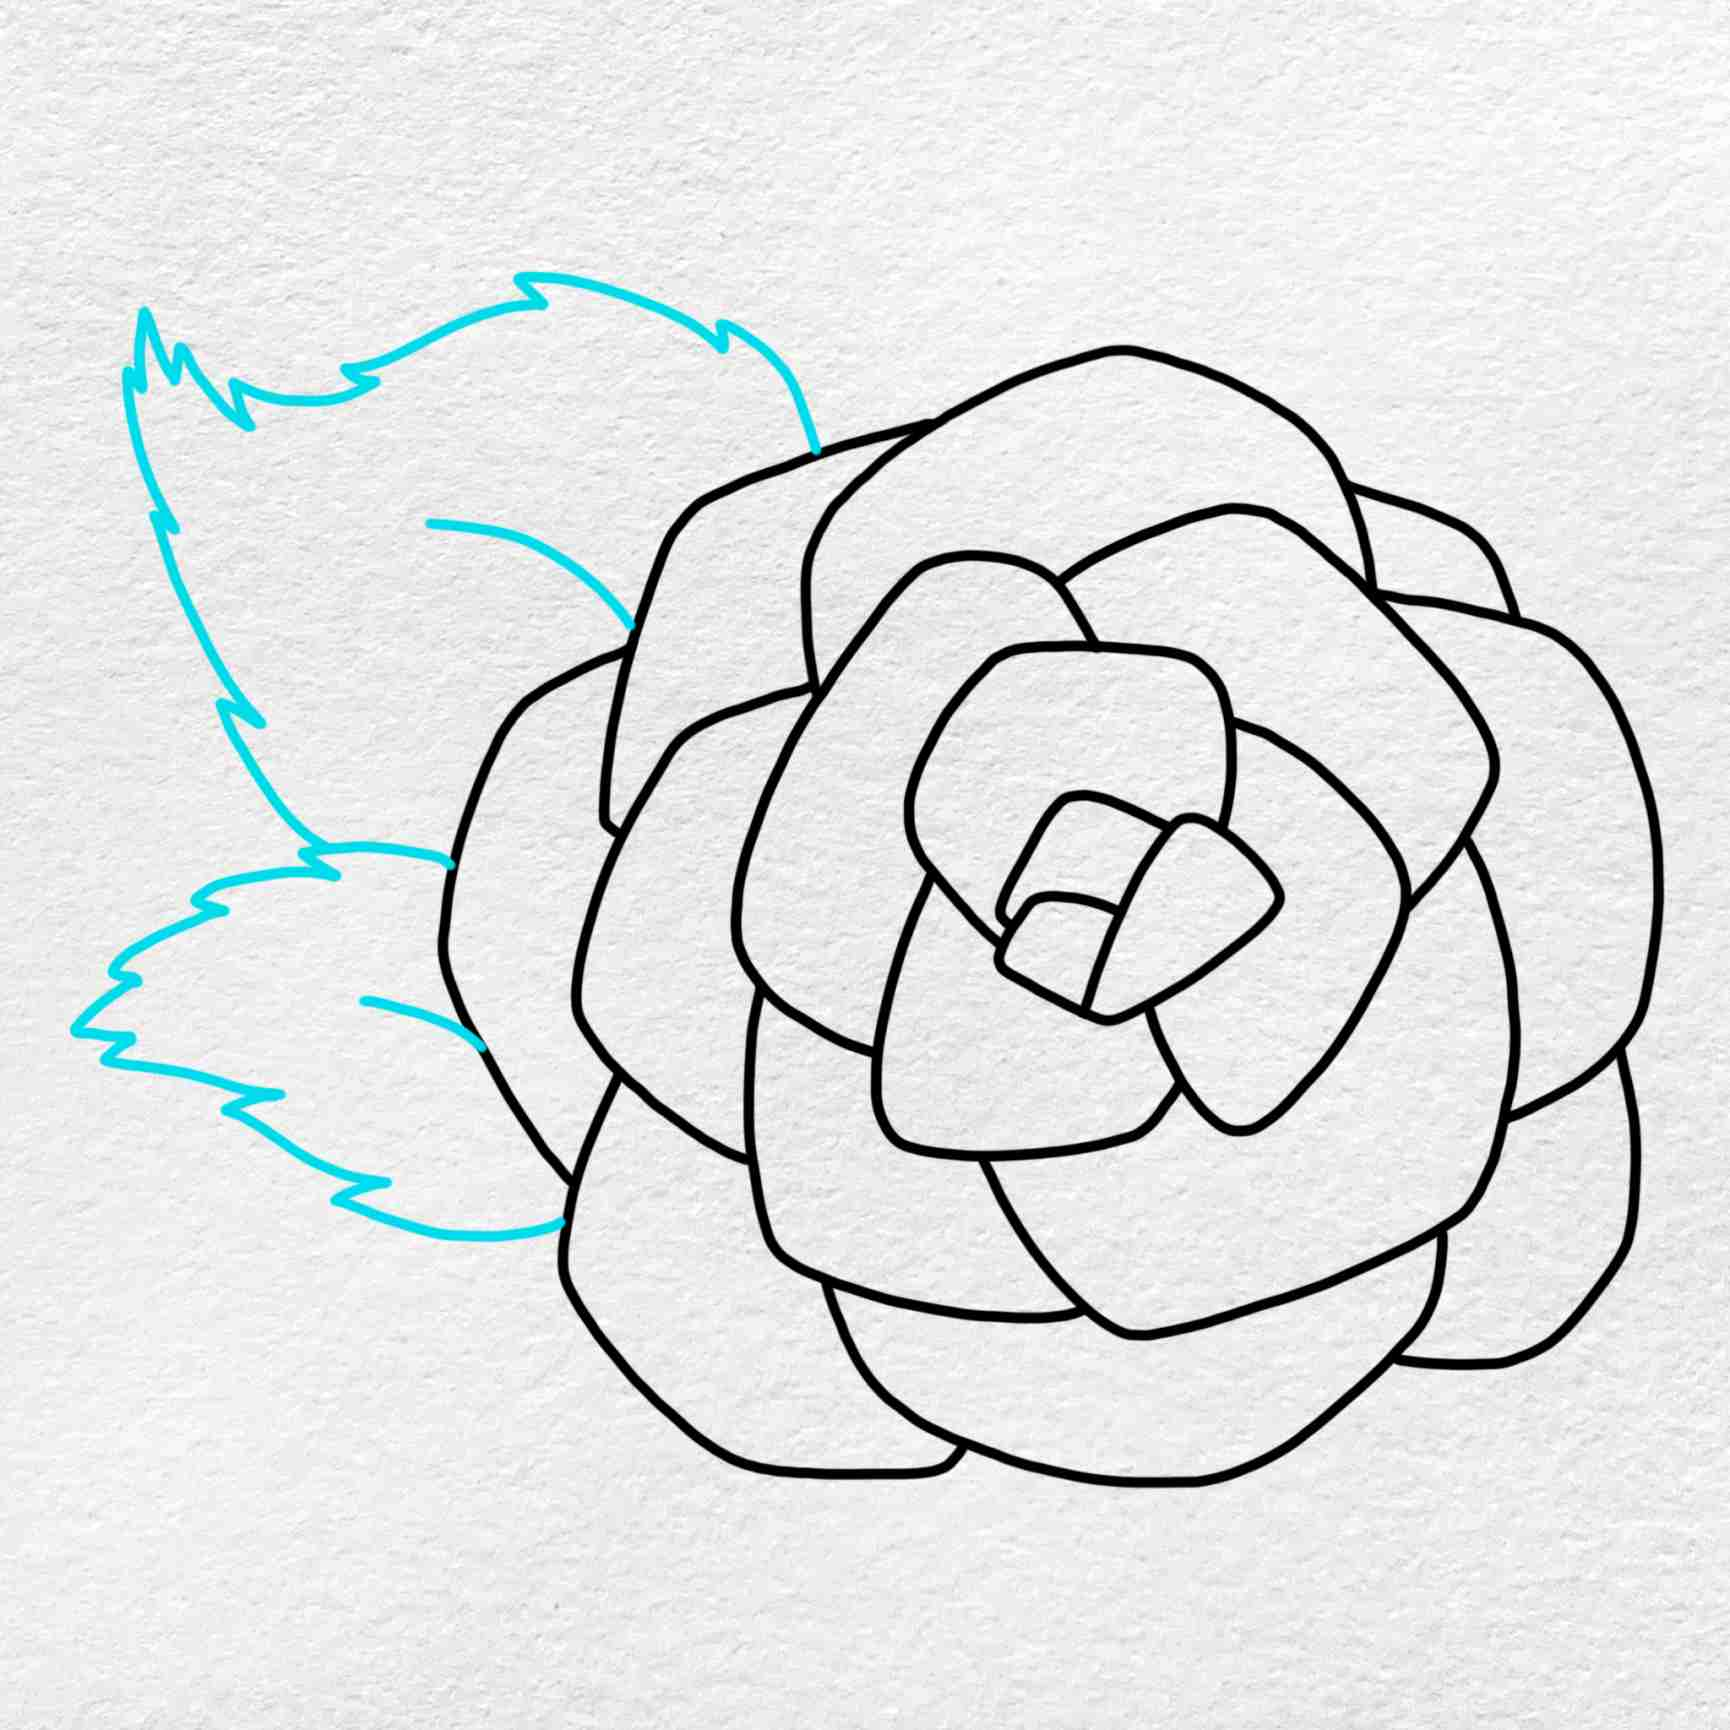 How To Draw A Rose For Beginners: Step 5